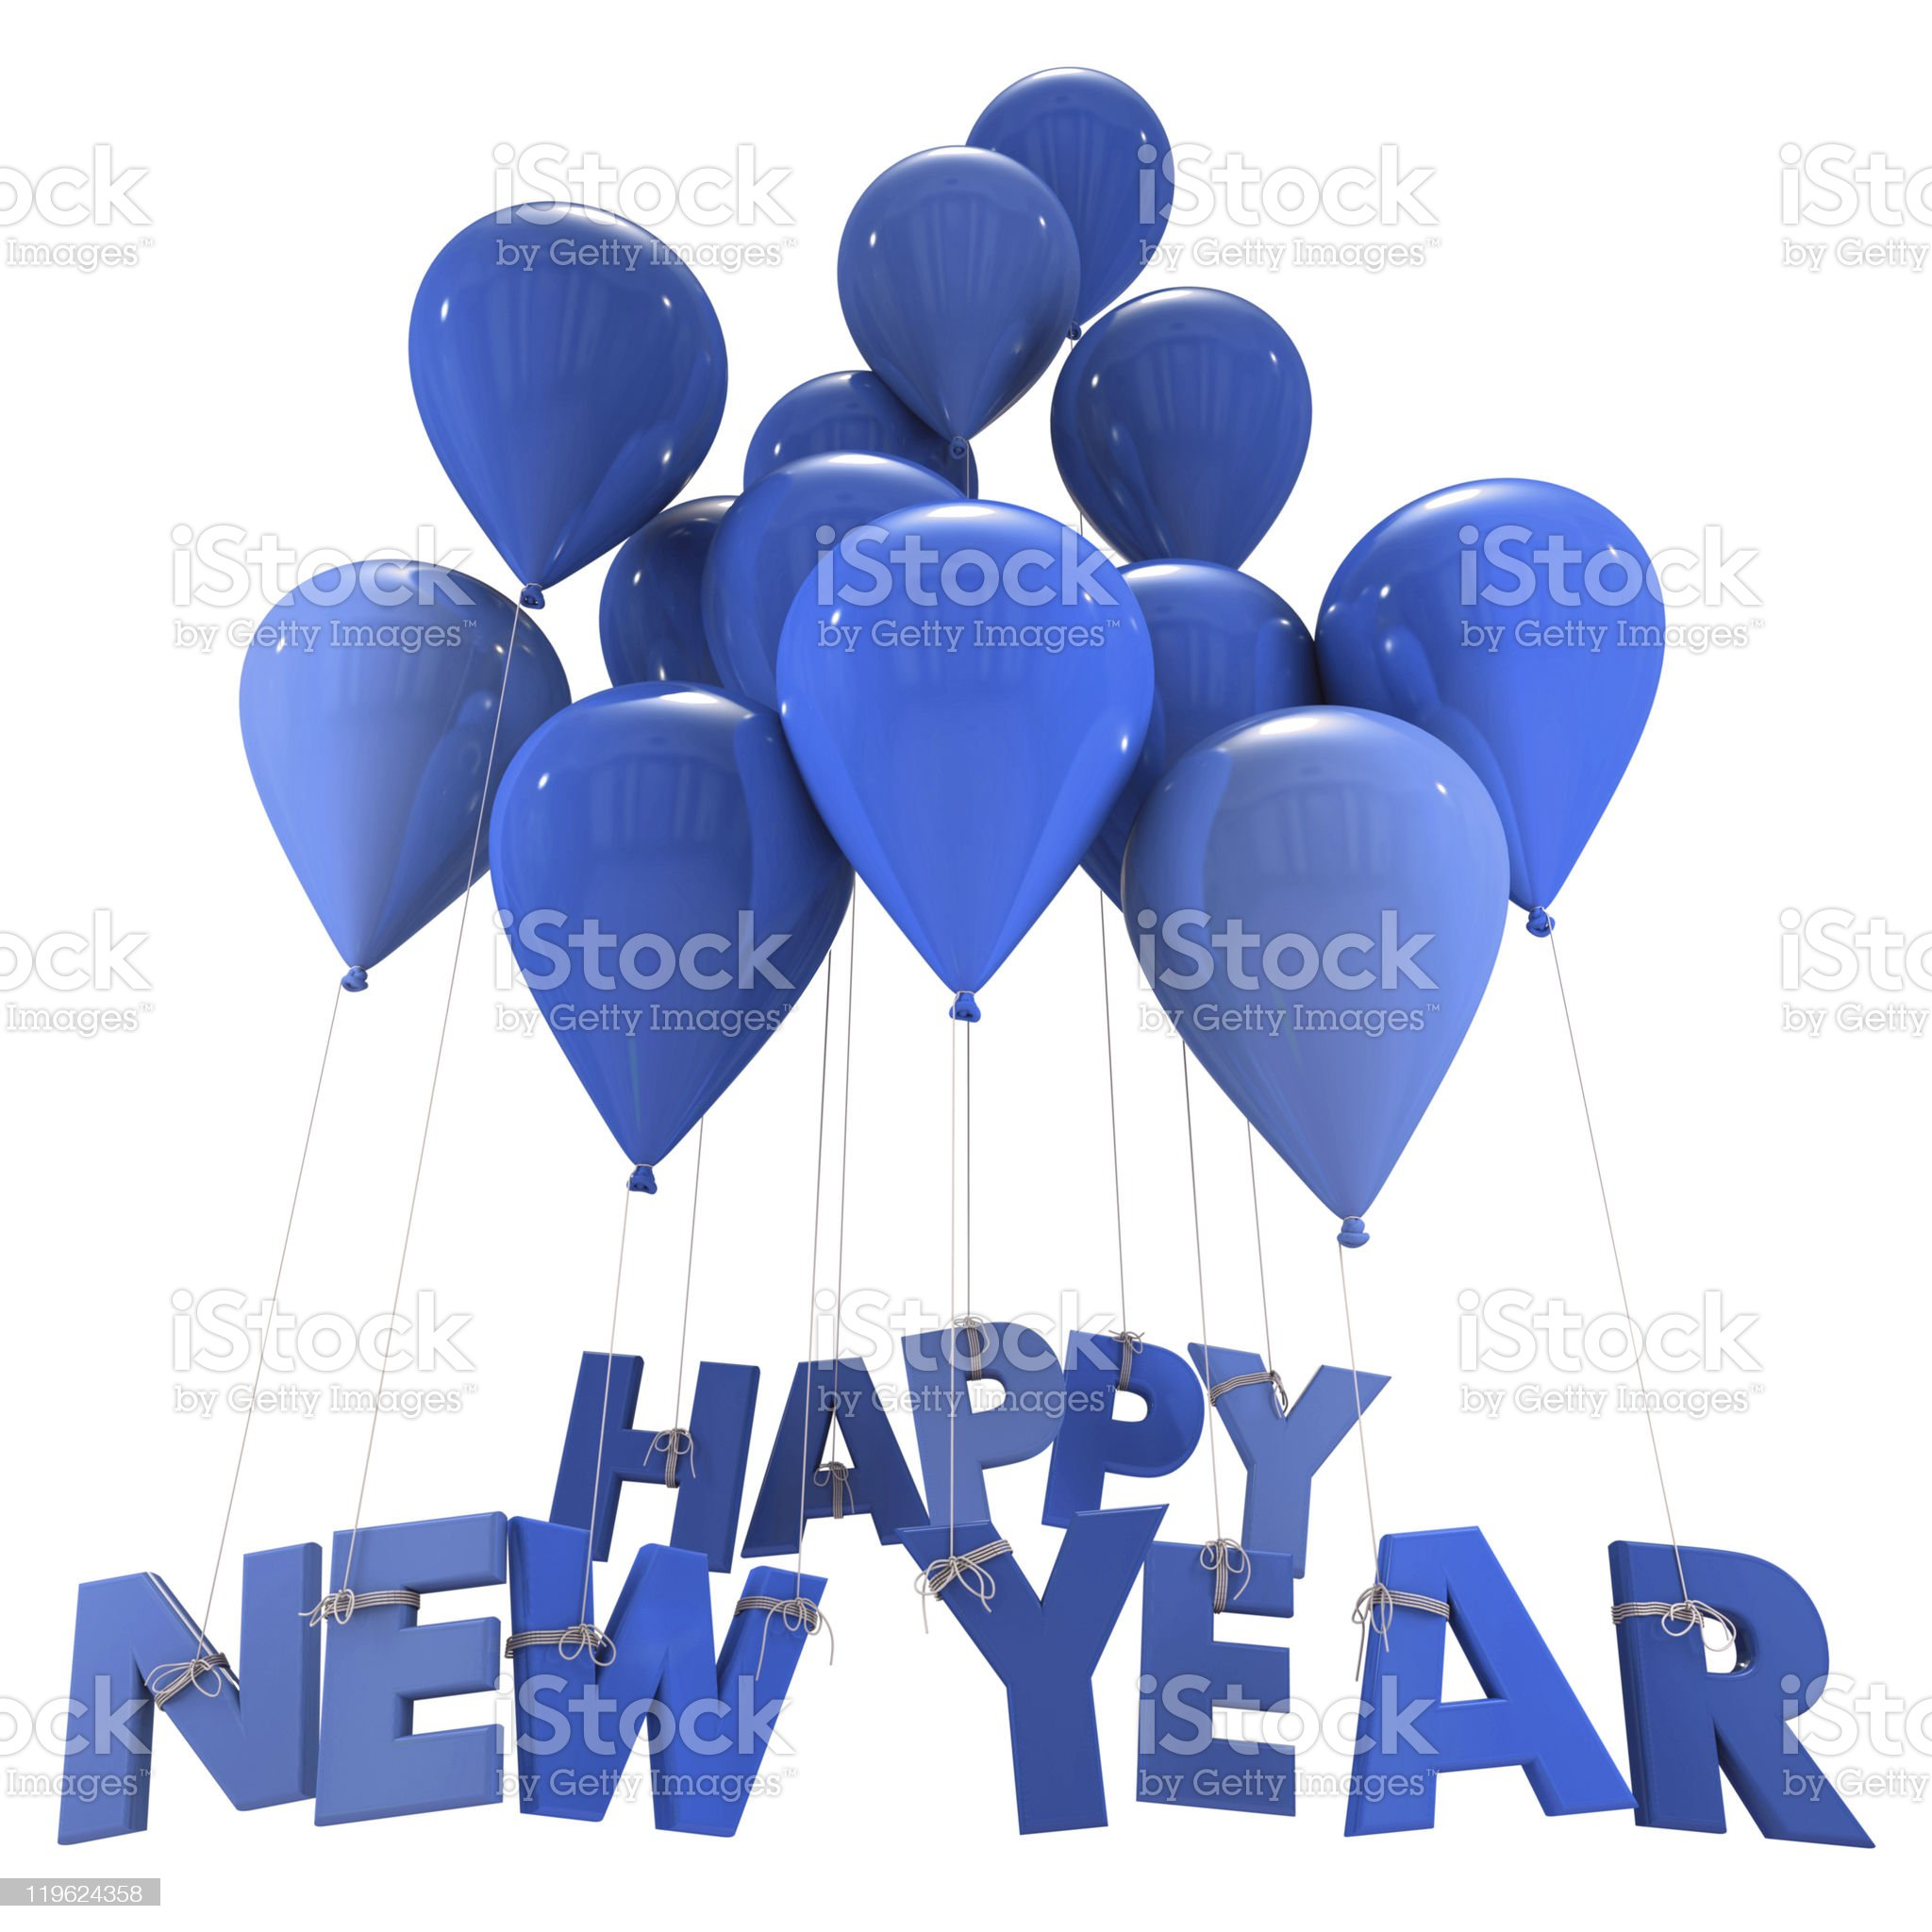 Happy New Year in blue royalty-free stock vector art